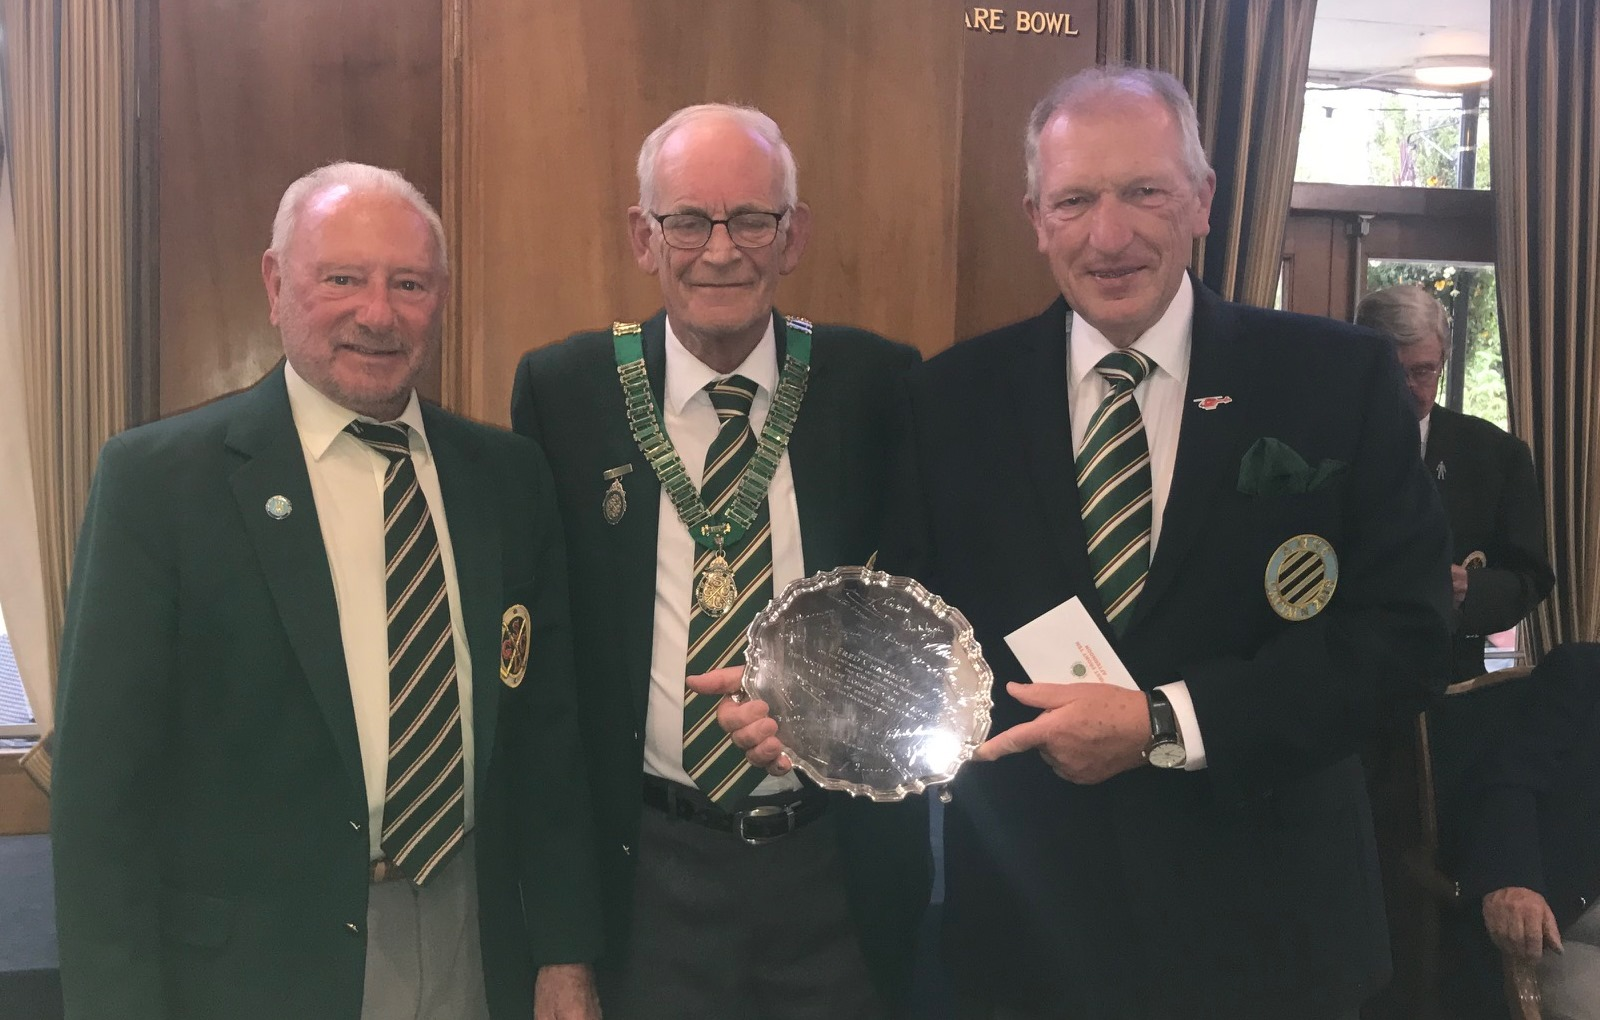 Captain Peter Cansick pictured with winners of the Fred Chambers Plate David Morrison Ashford Manor and Alan McWilliam from Datchet Golf Club